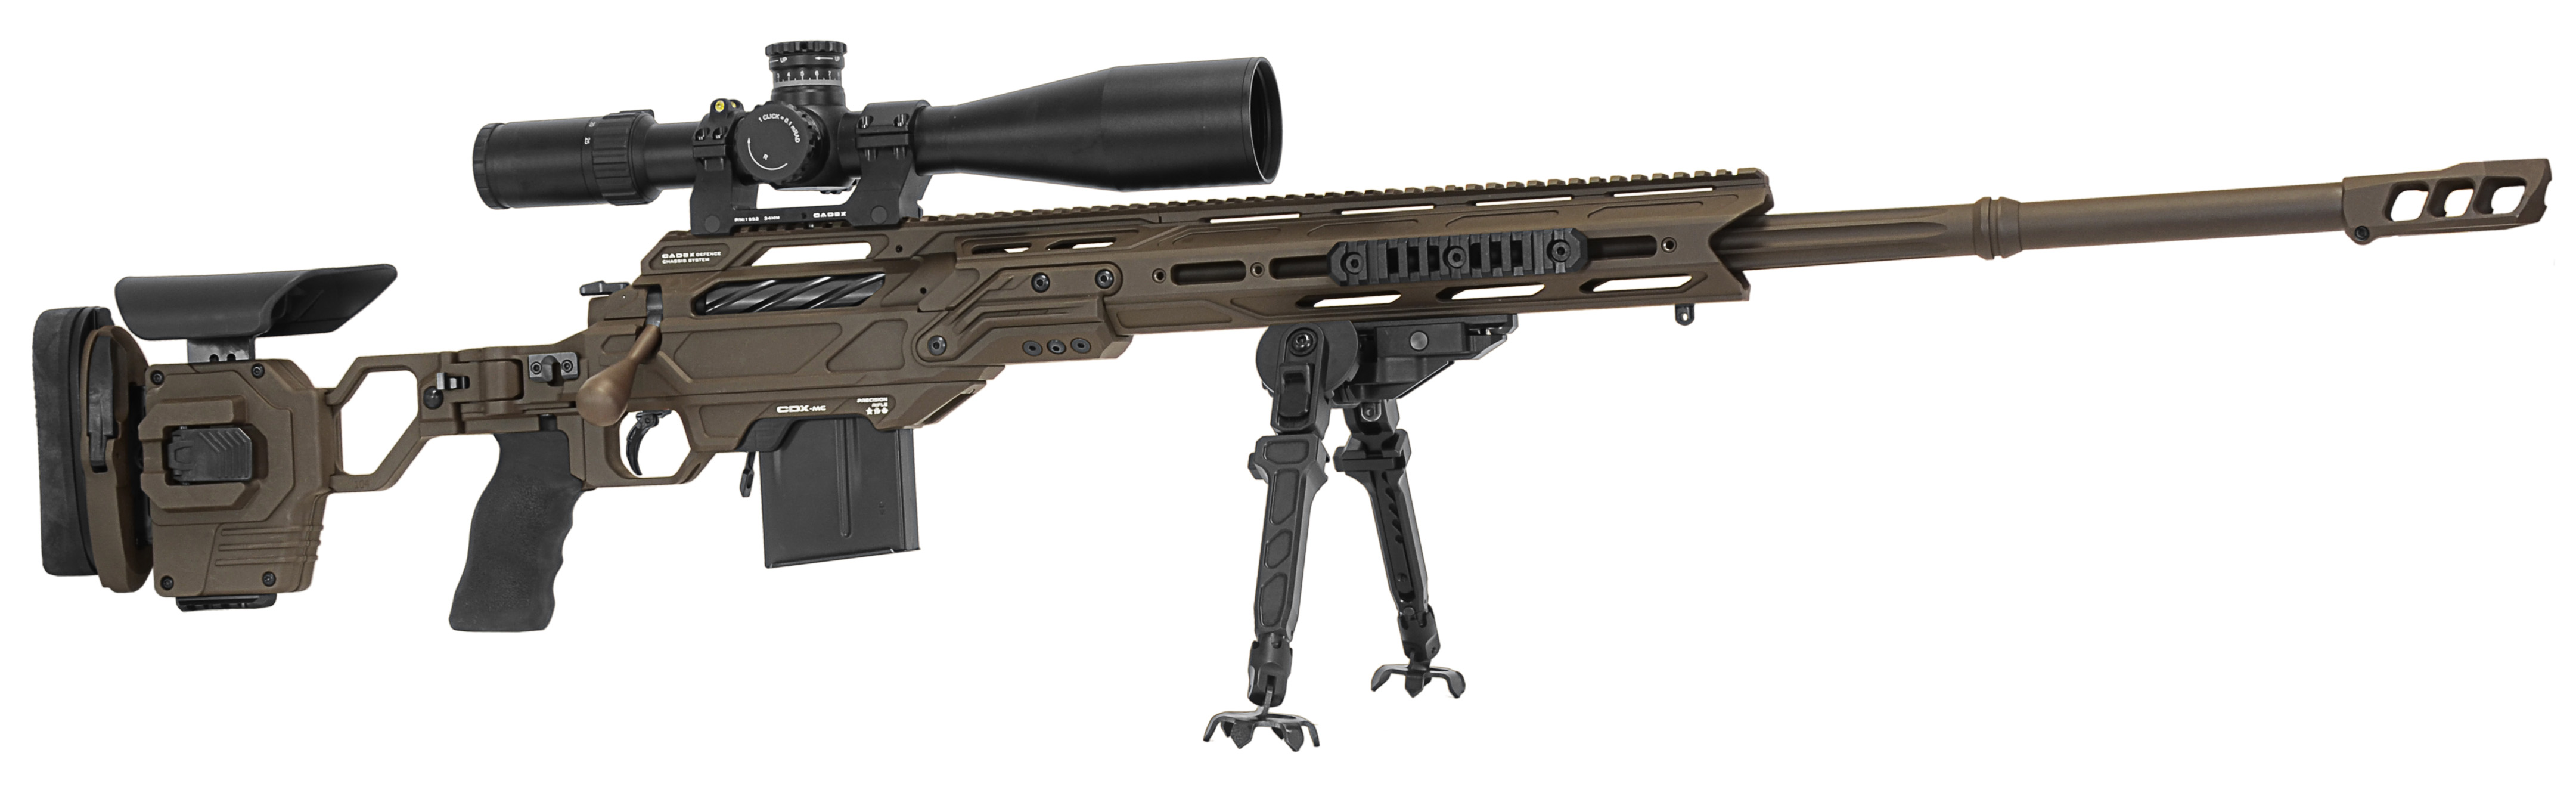 Kraken Multi-Caliber rifle